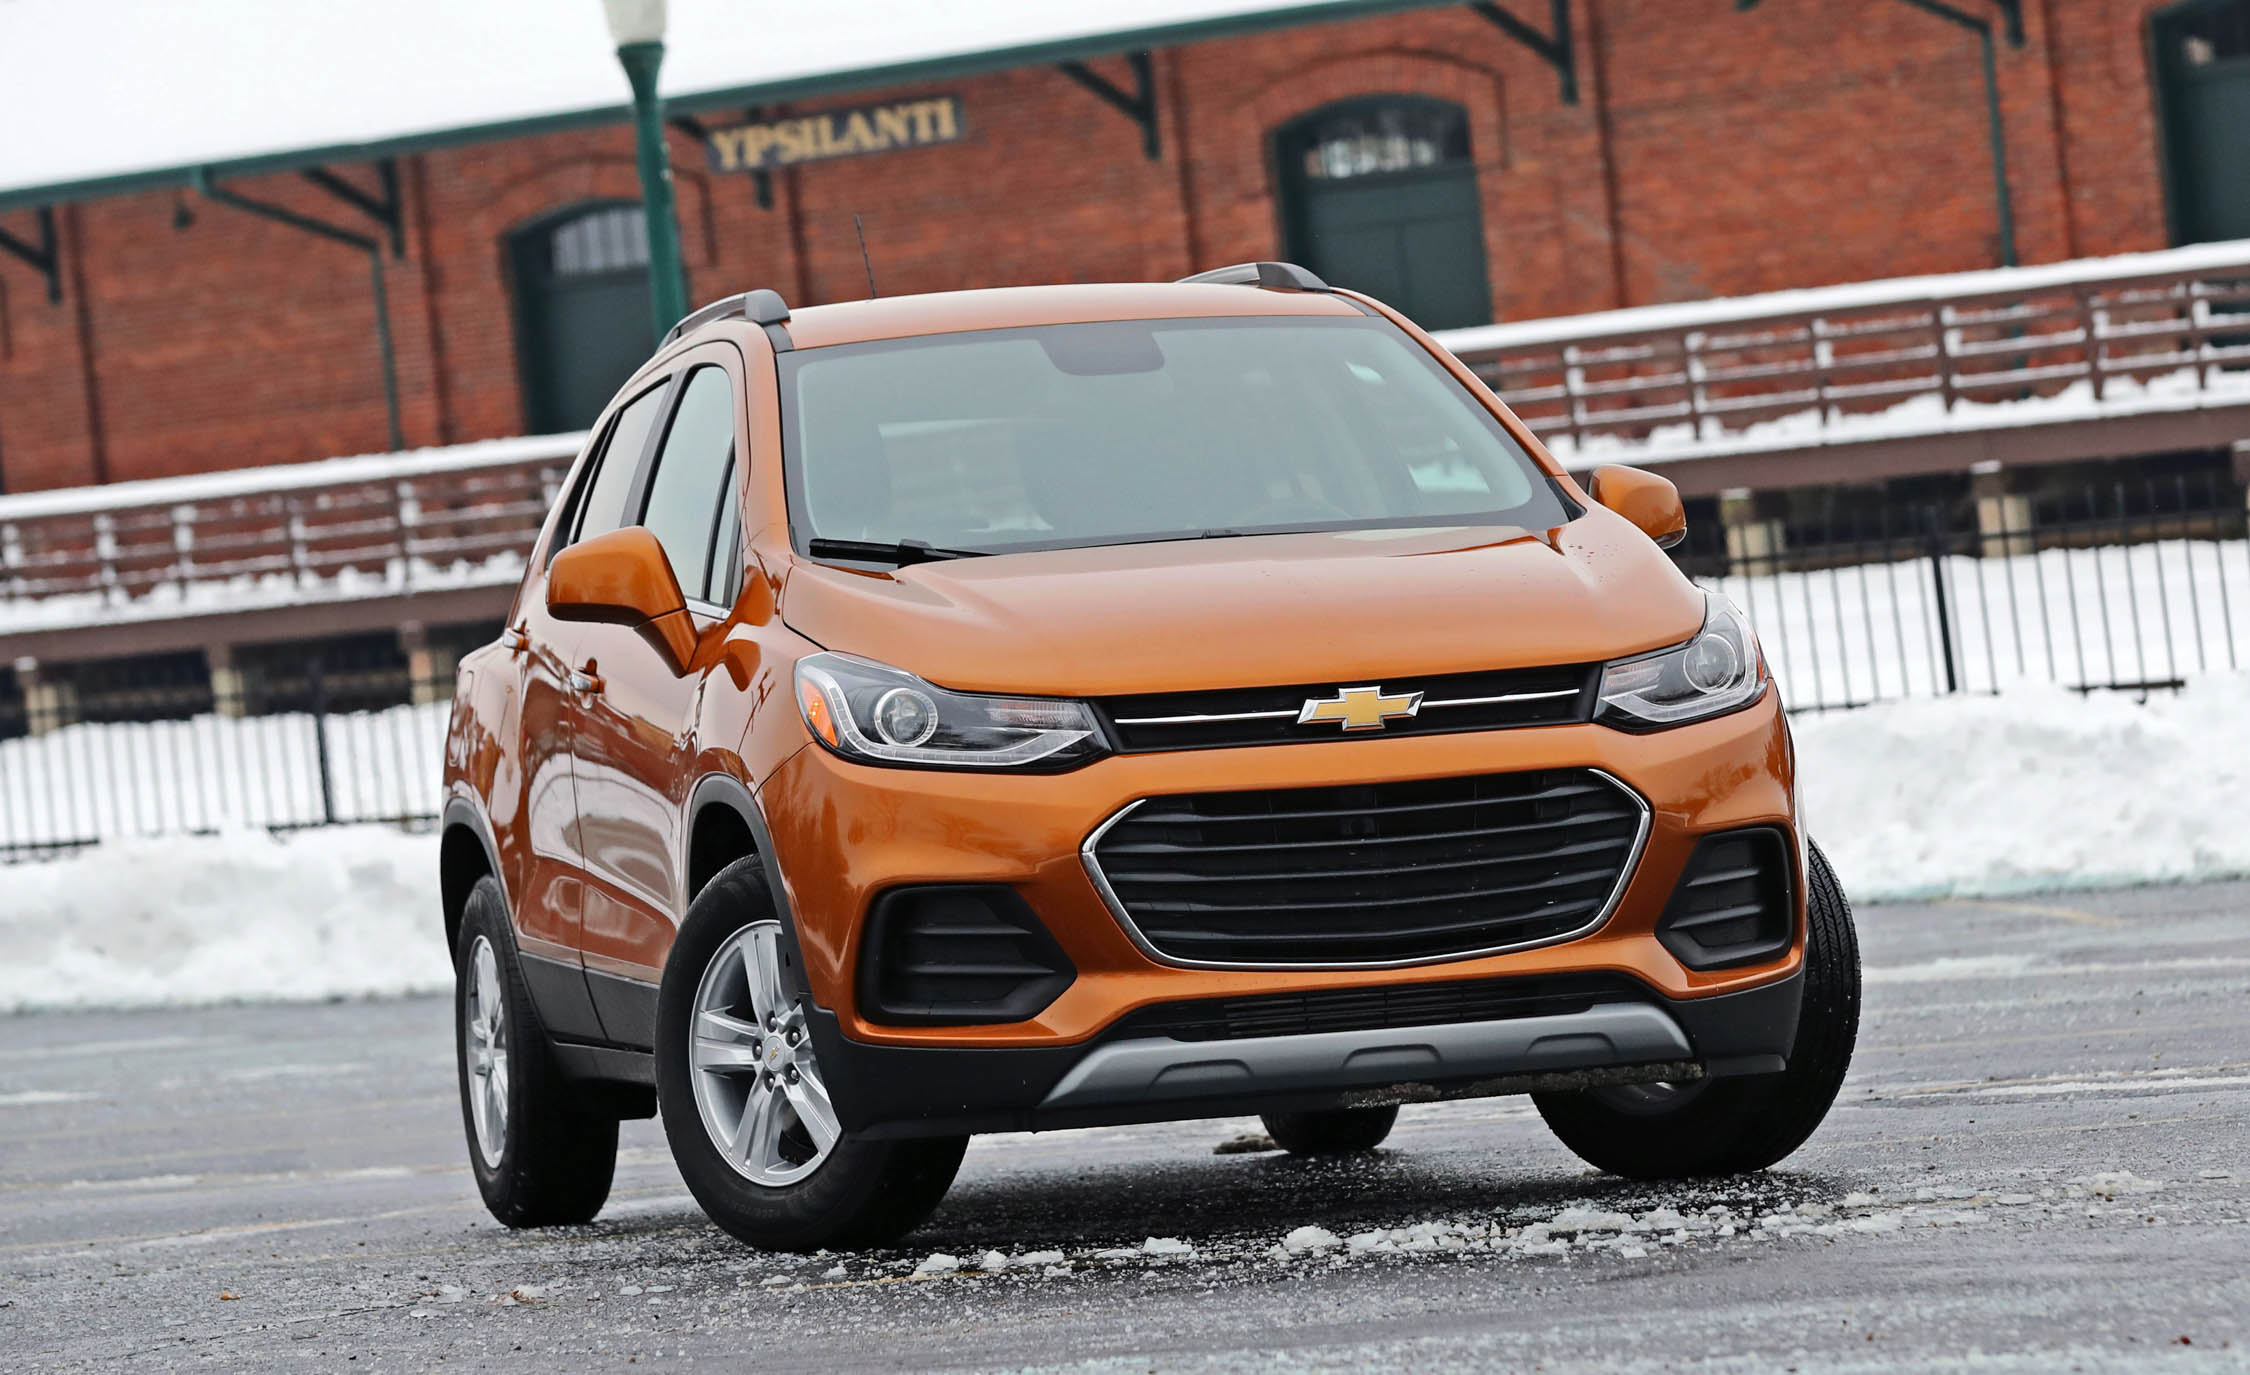 2017 Chevrolet Trax Exterior Front (Photo 1 of 47)